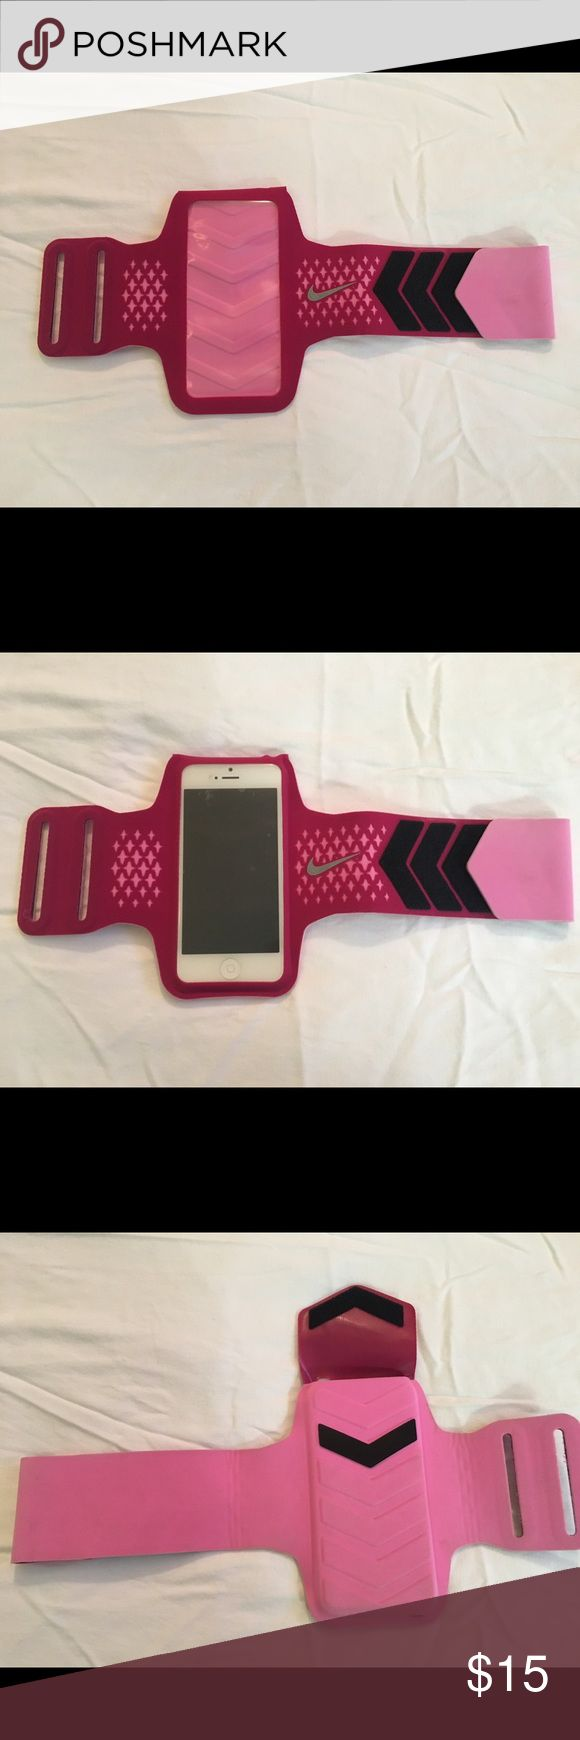 Pink Nike running armband iphone 5/5s Never used, just never fit. Perfect condition. Nike Other